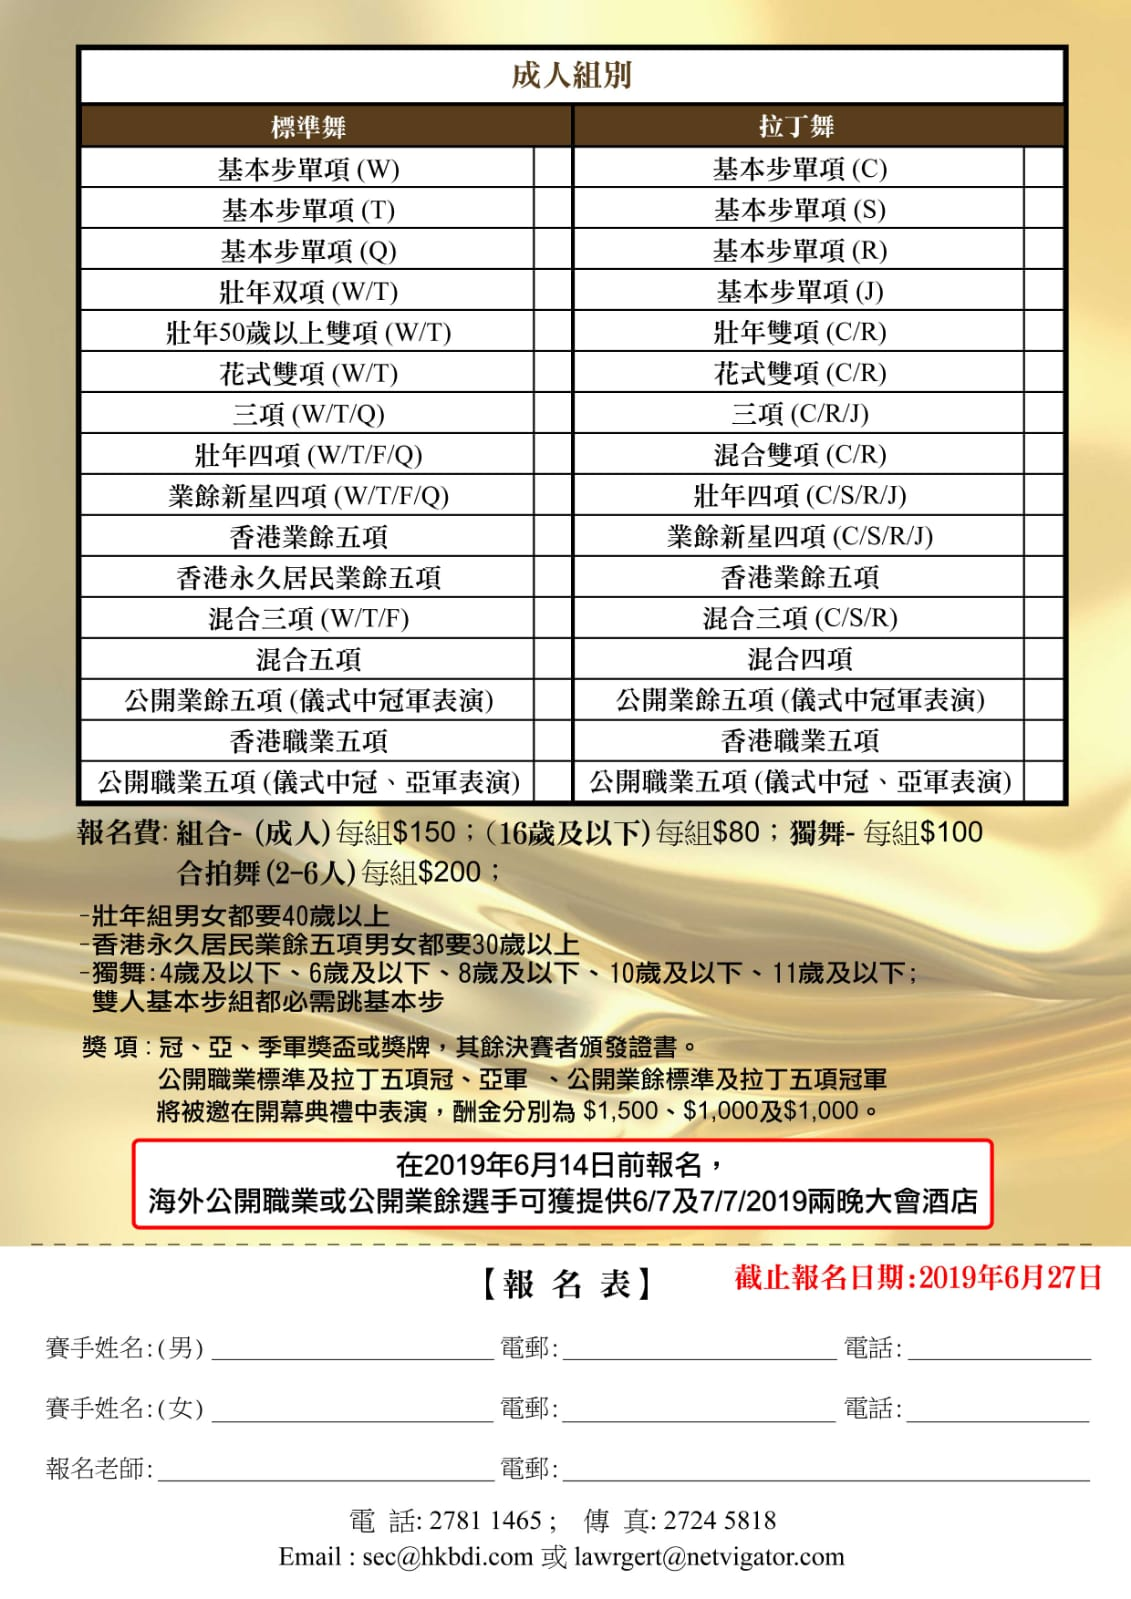 8th Handover Cup Chinese leaflet p.2